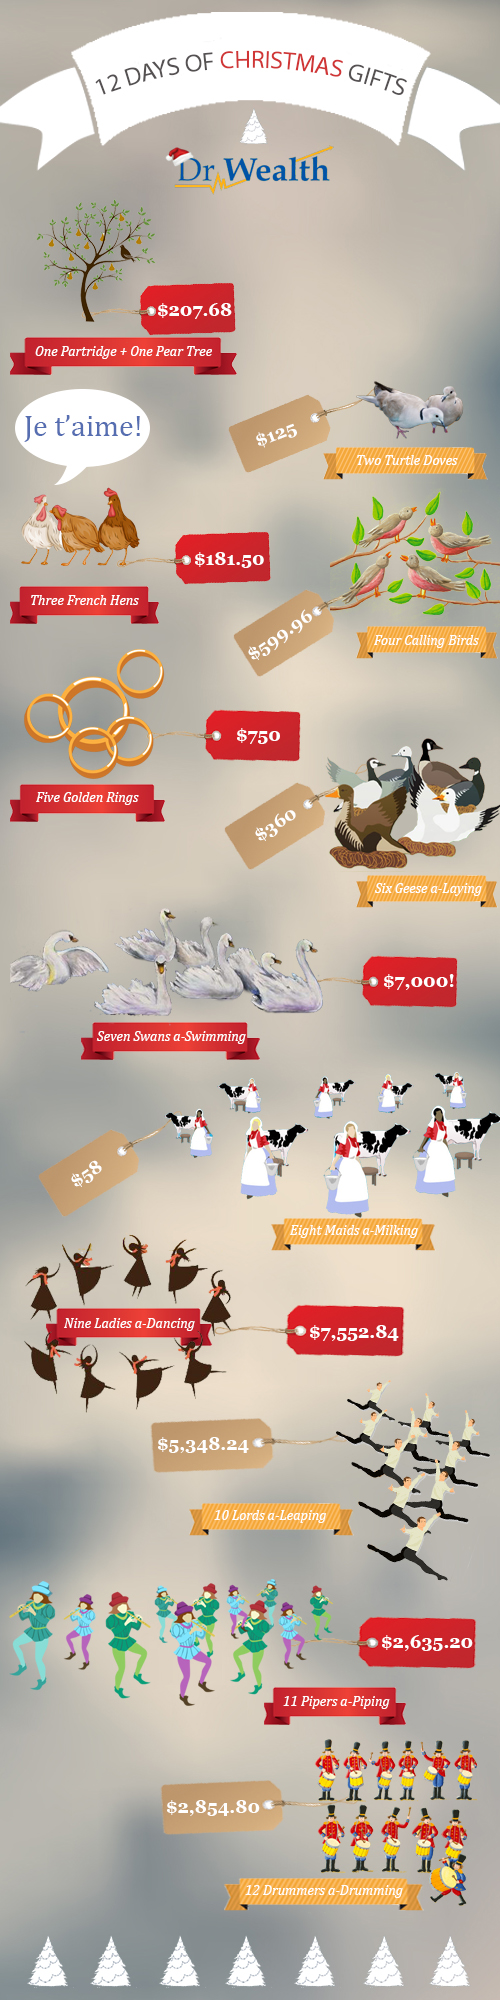 12 Days of Christmas Gifts [Infographic]